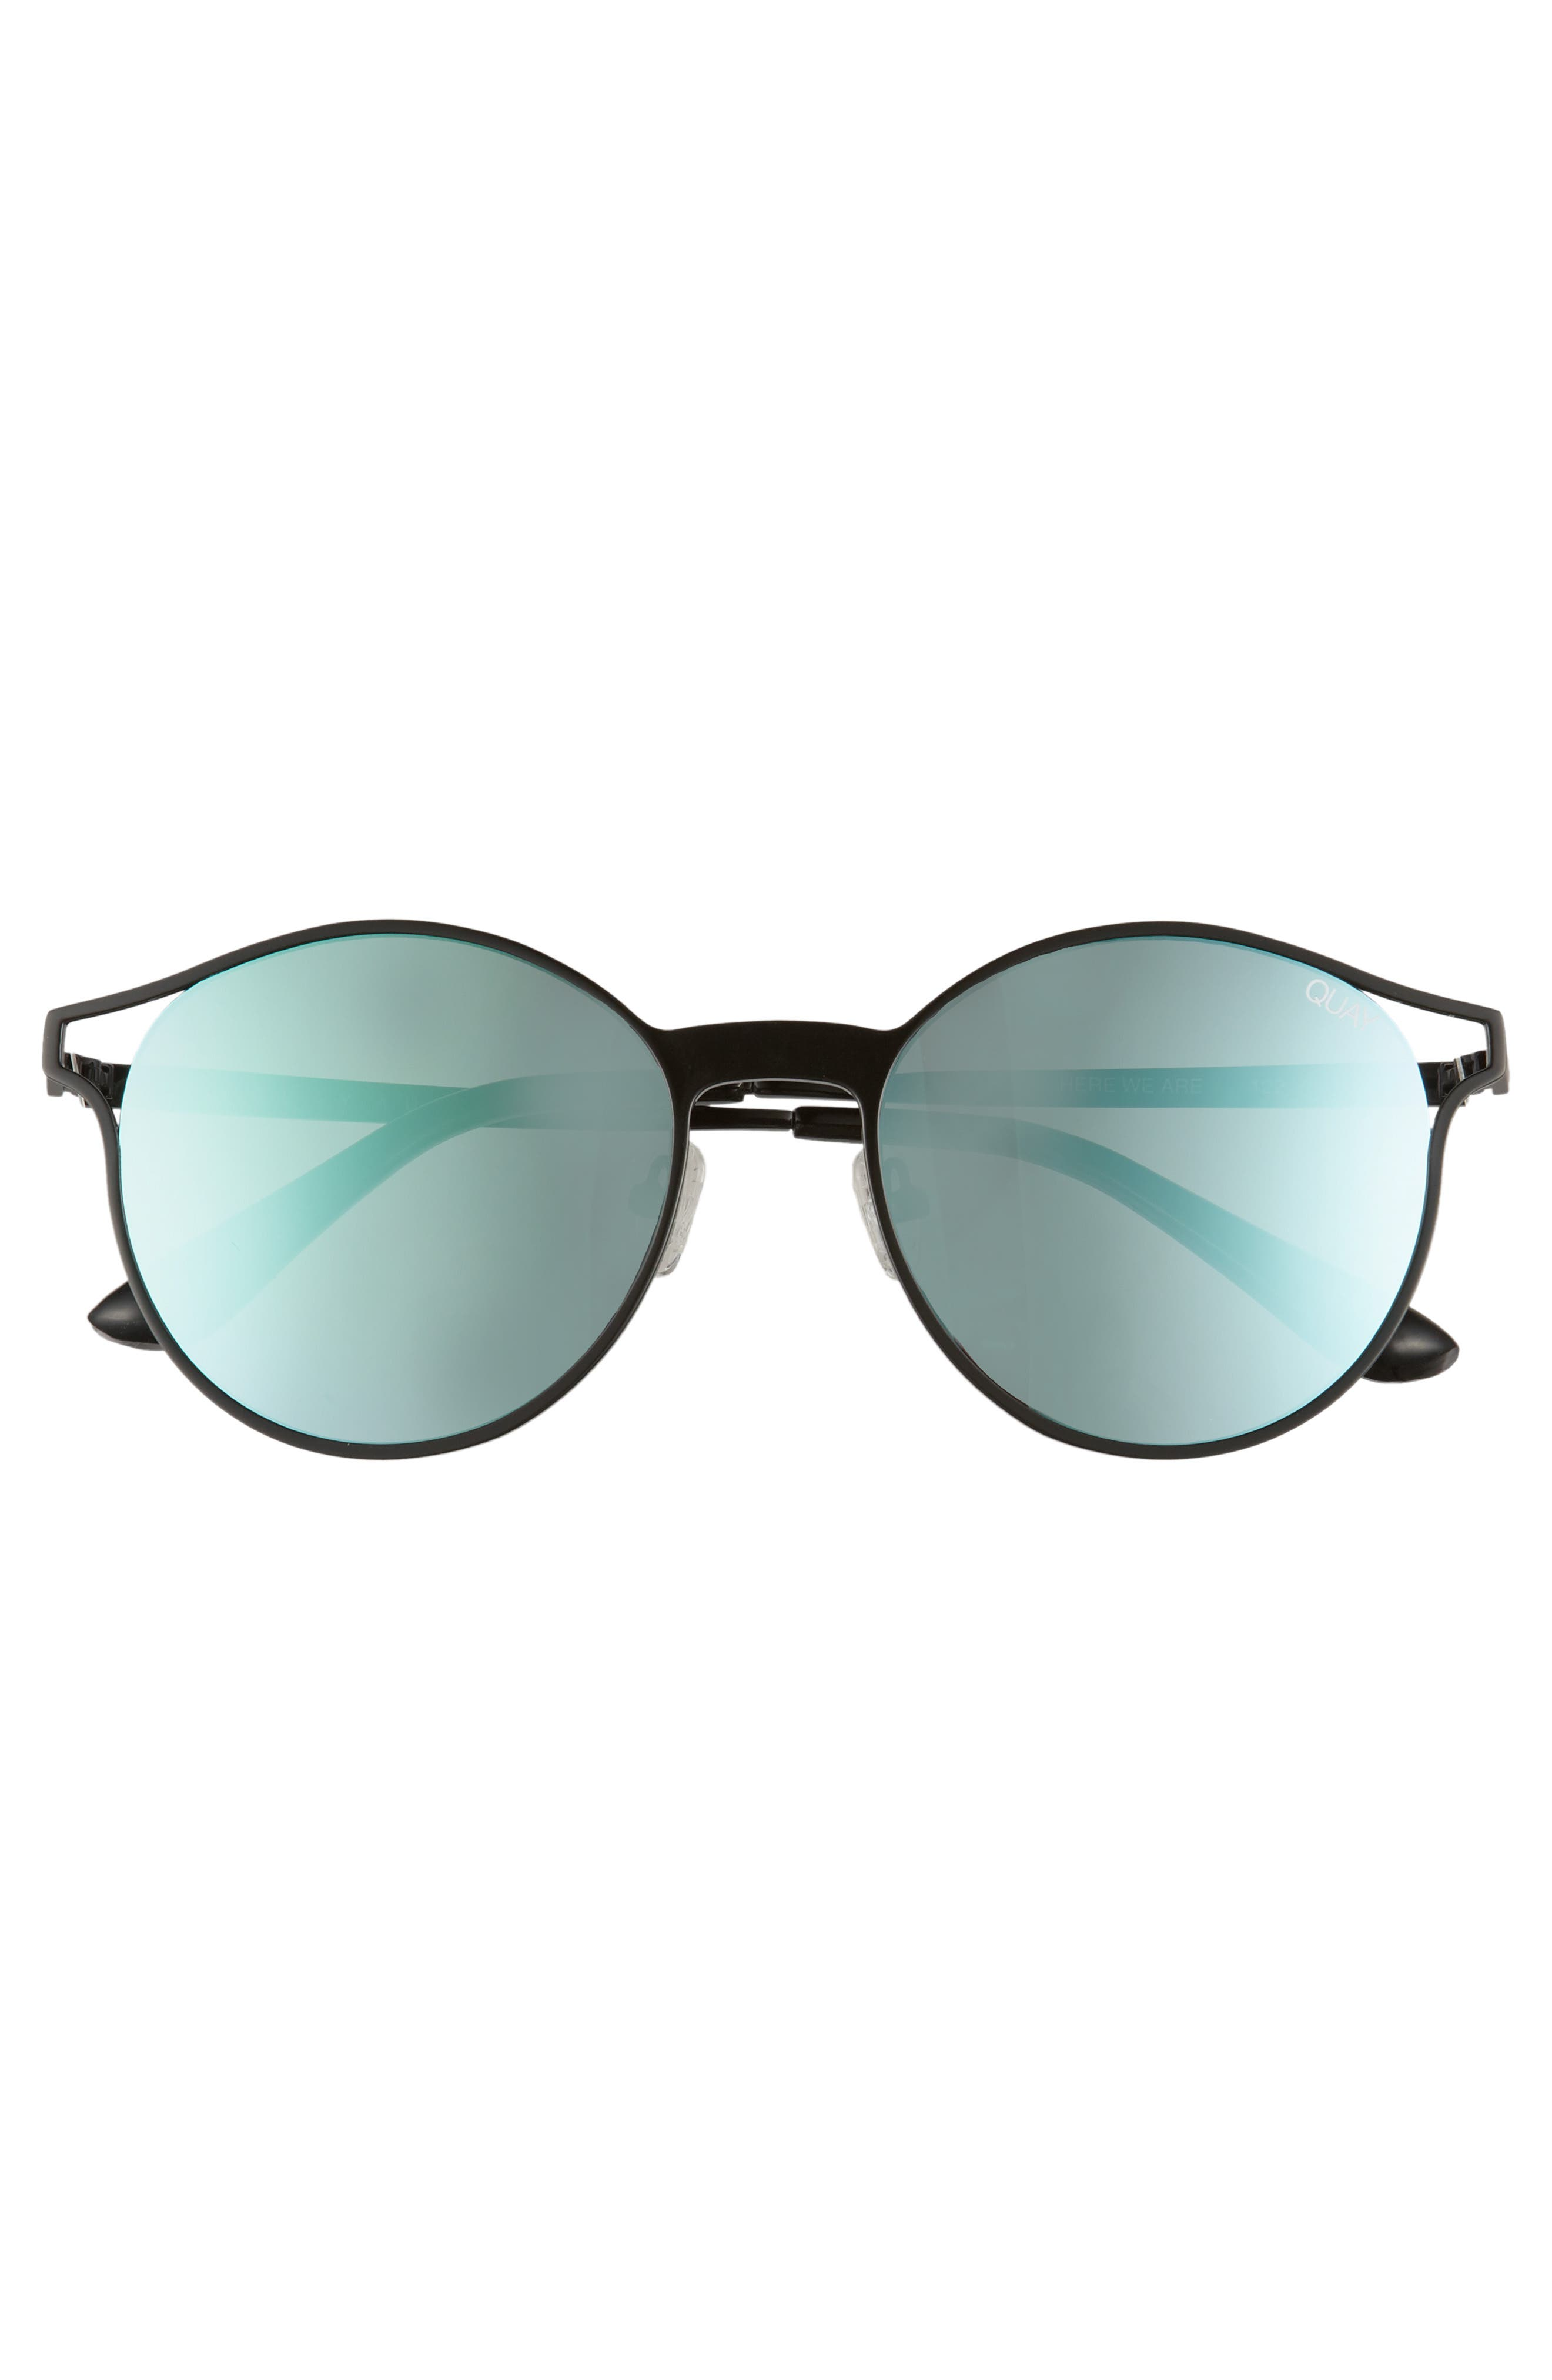 Here We Are 53mm Round Sunglasses,                             Alternate thumbnail 3, color,                             001